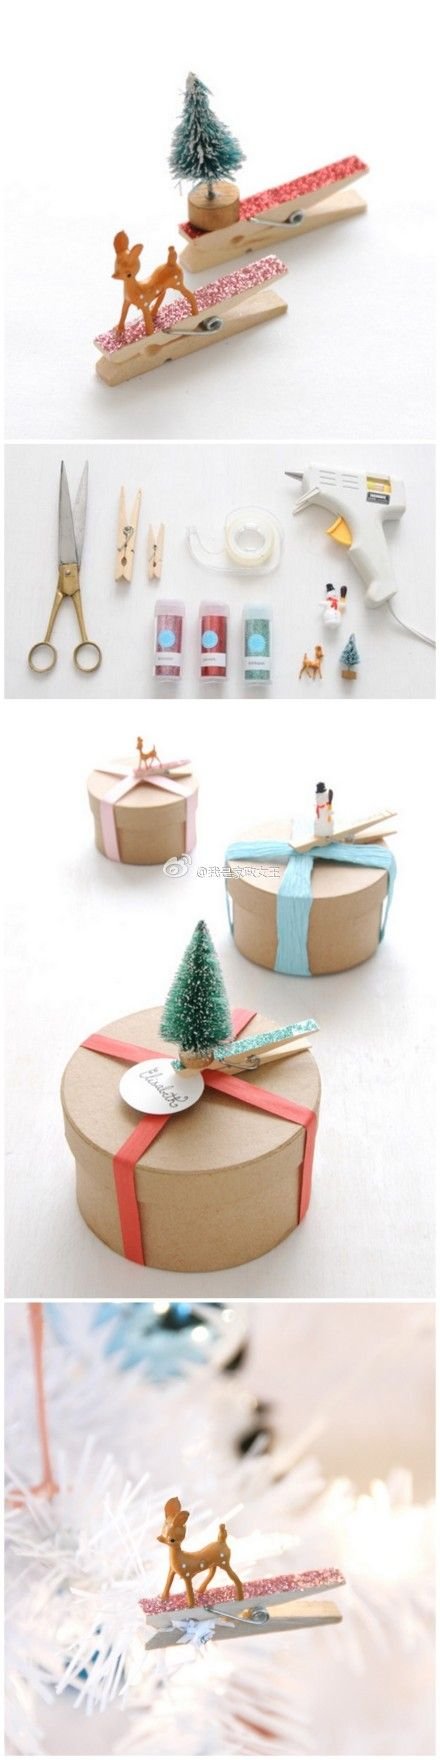 Clothespin ornament by Creature Comforts